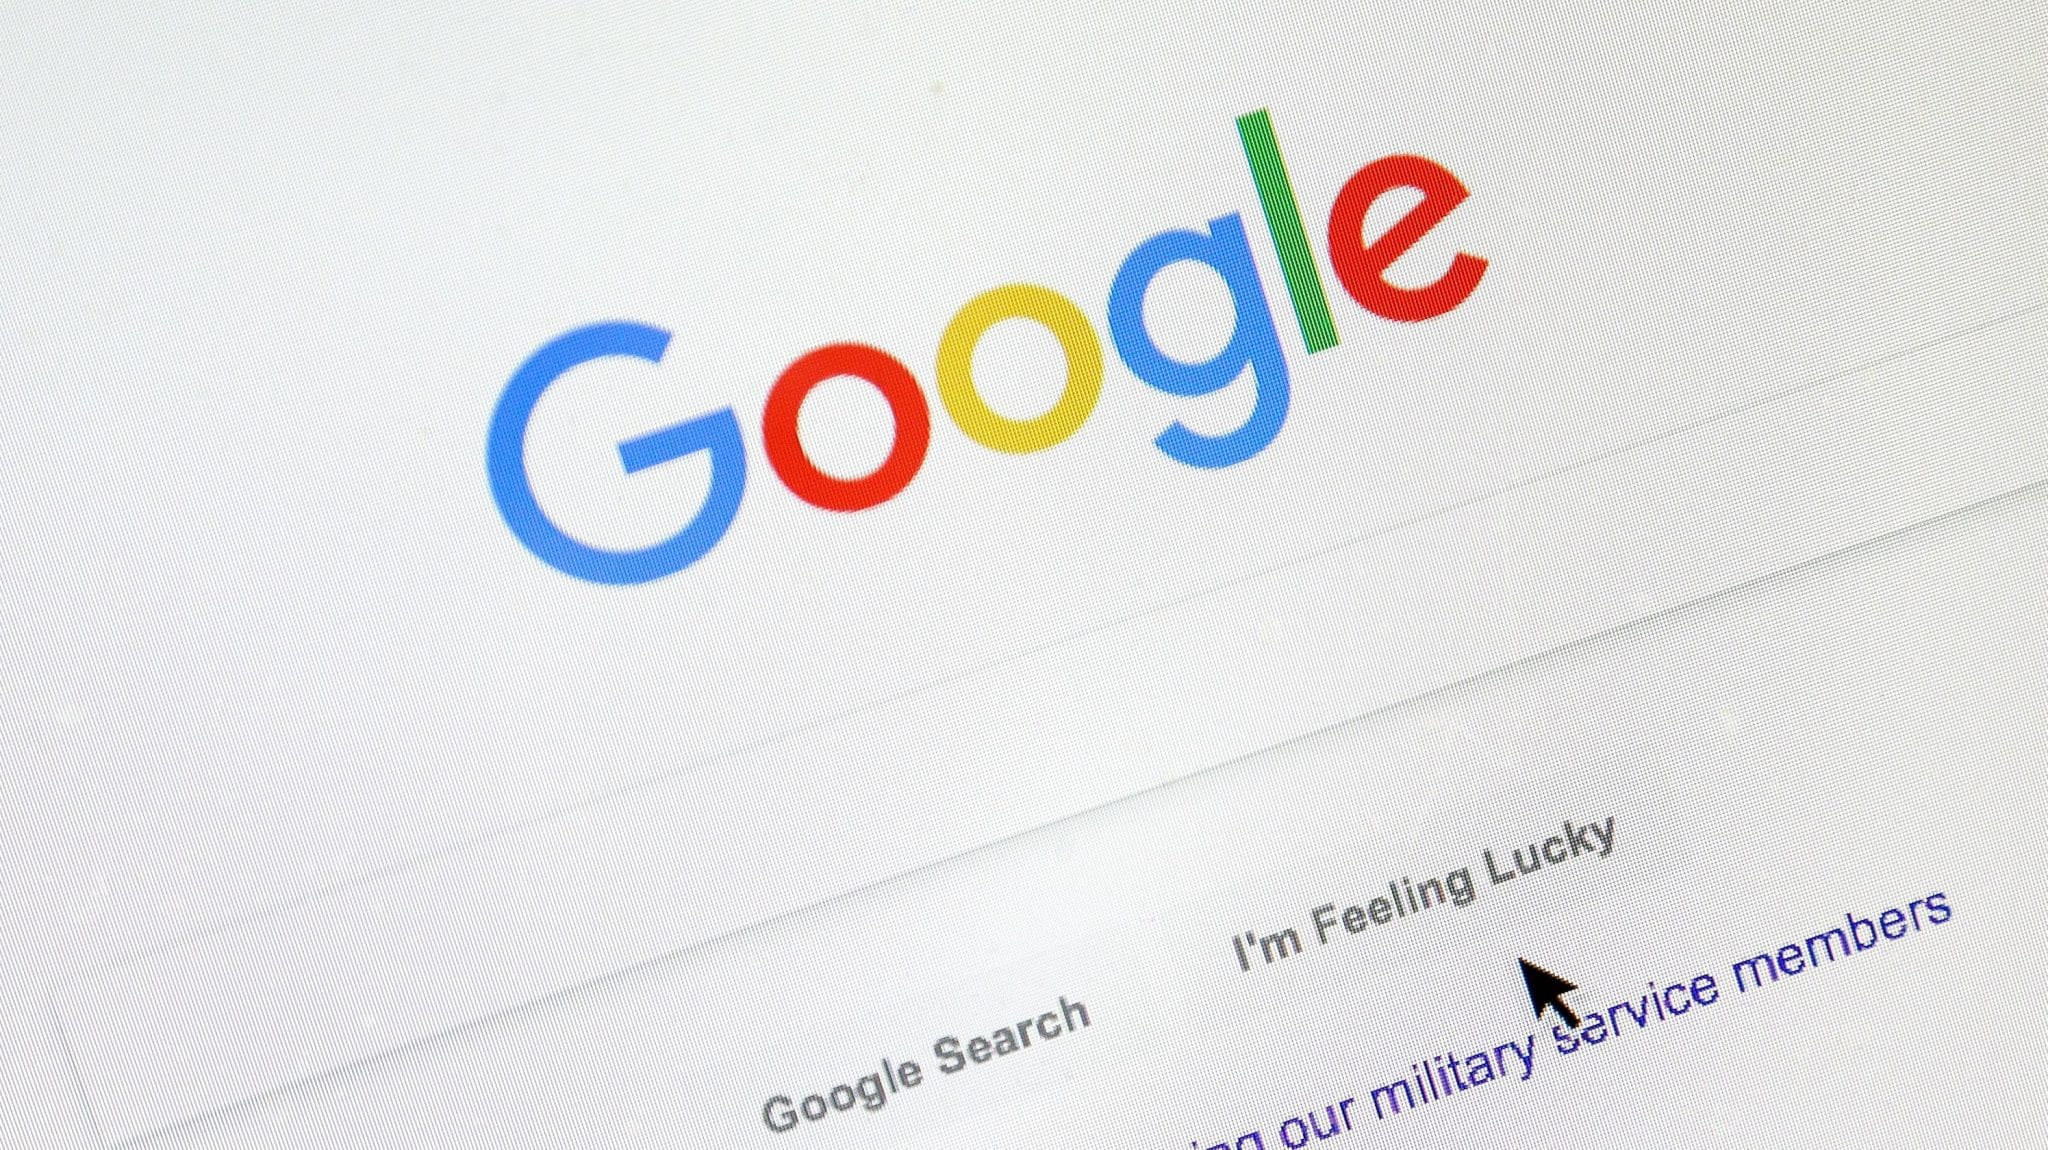 Use this extension called Google Unlocked to display hidden search results on Google